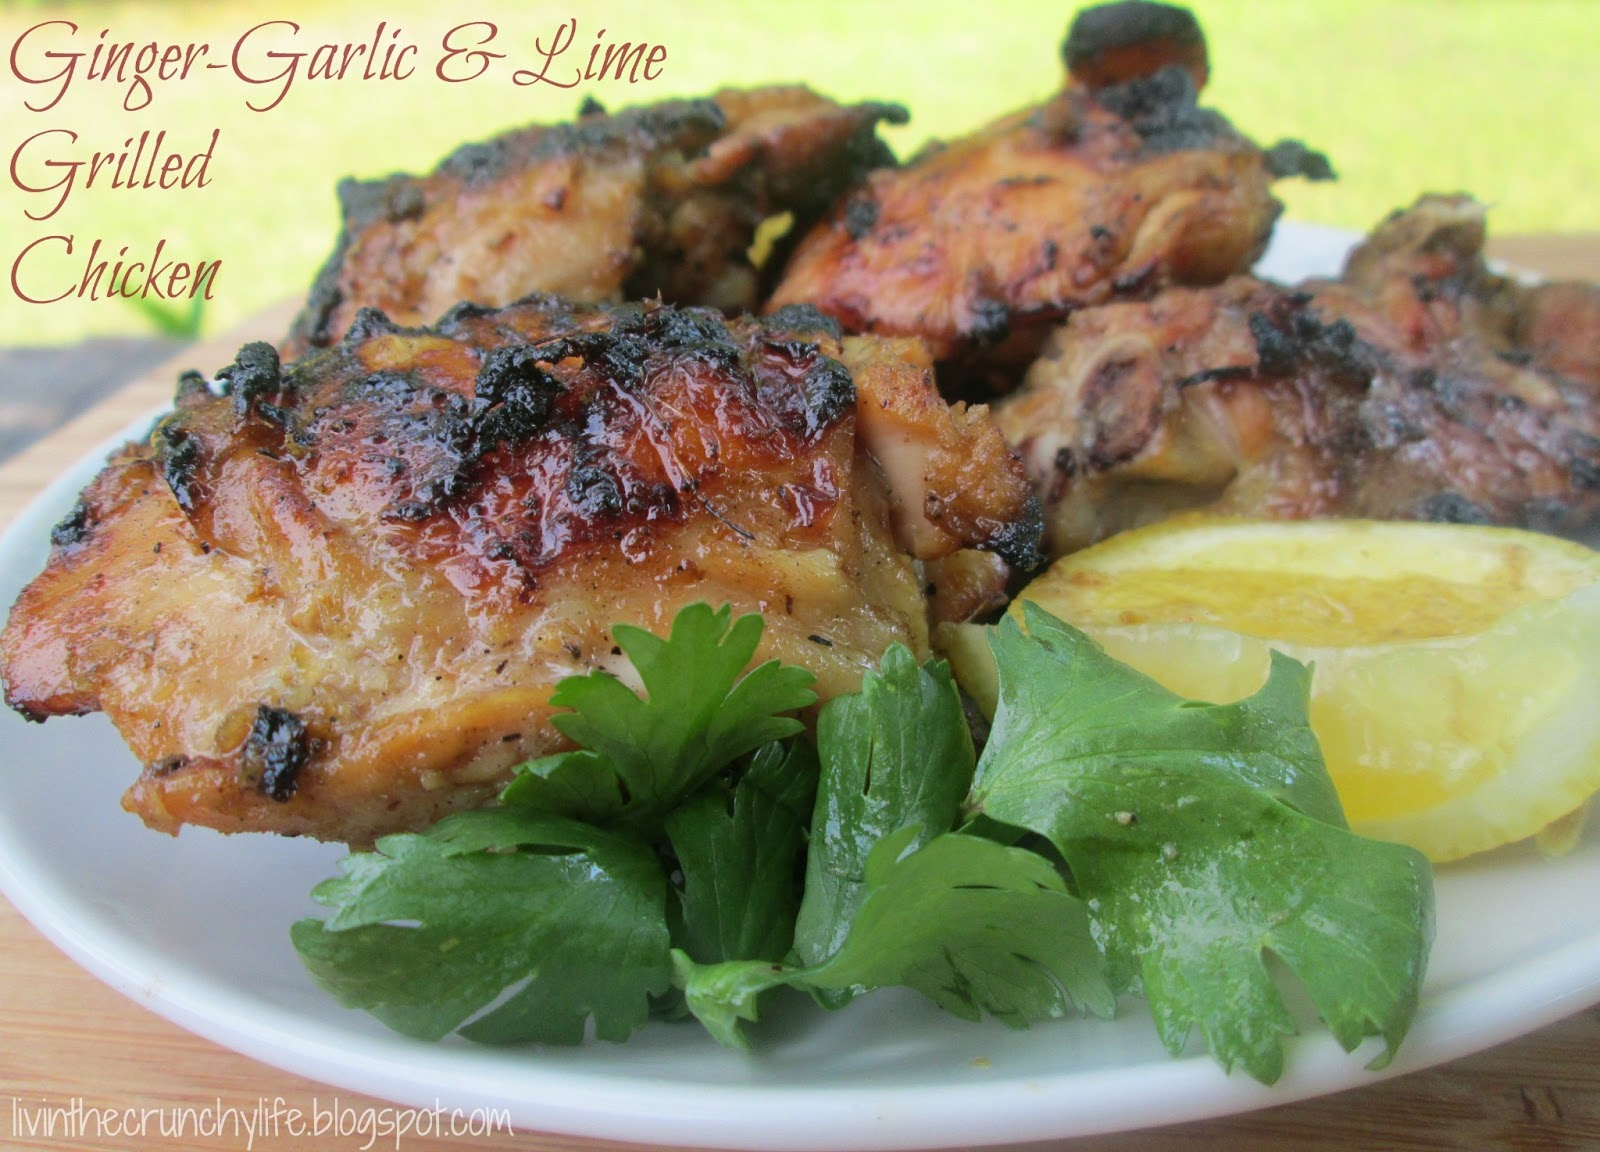 Ginger-Garlic Lime Grilled Chicken